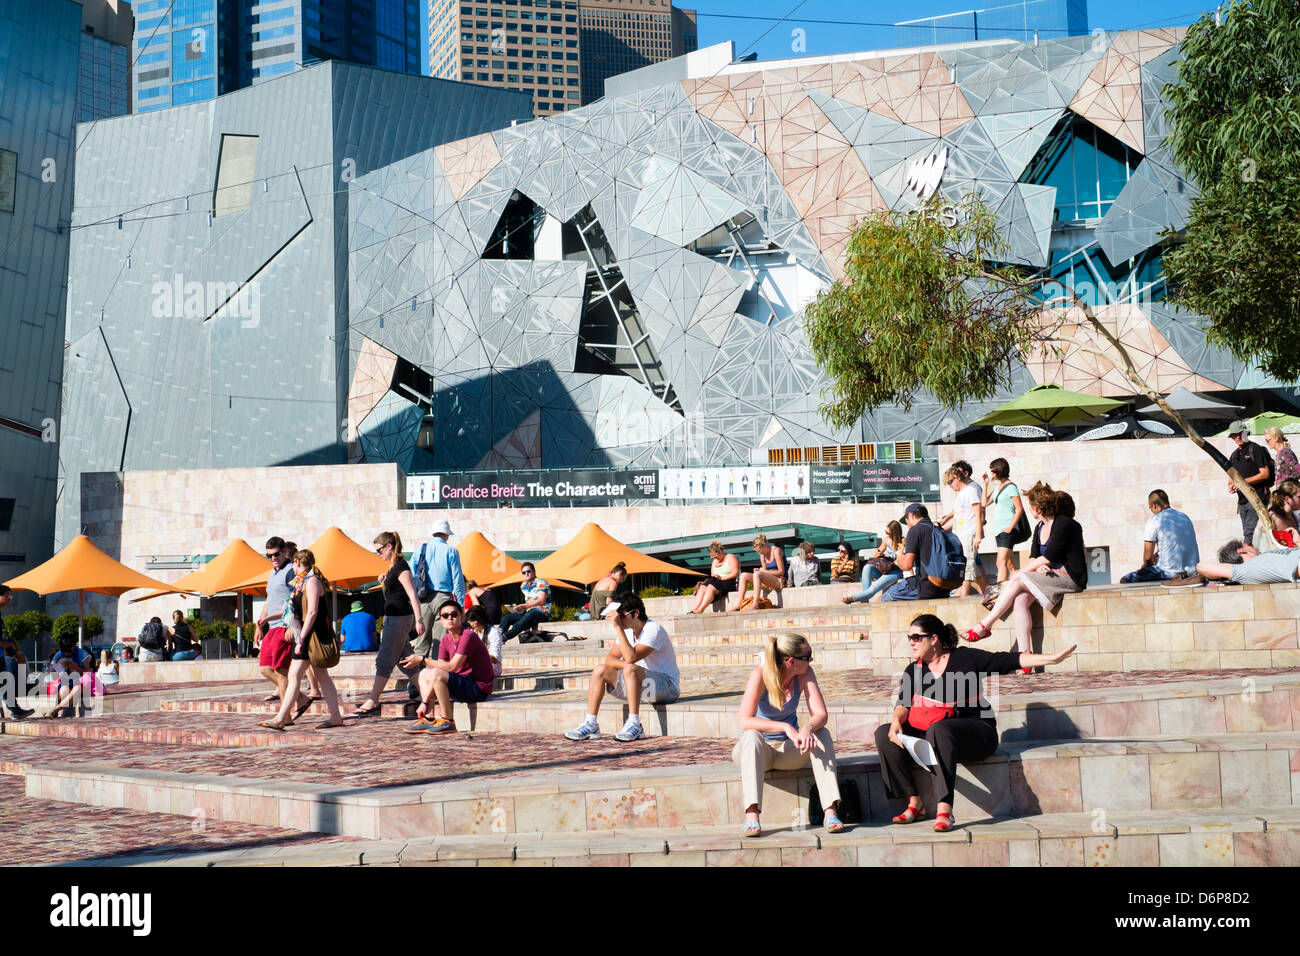 View of plaza at Federation Square in central Melbourne Australia - Stock Image